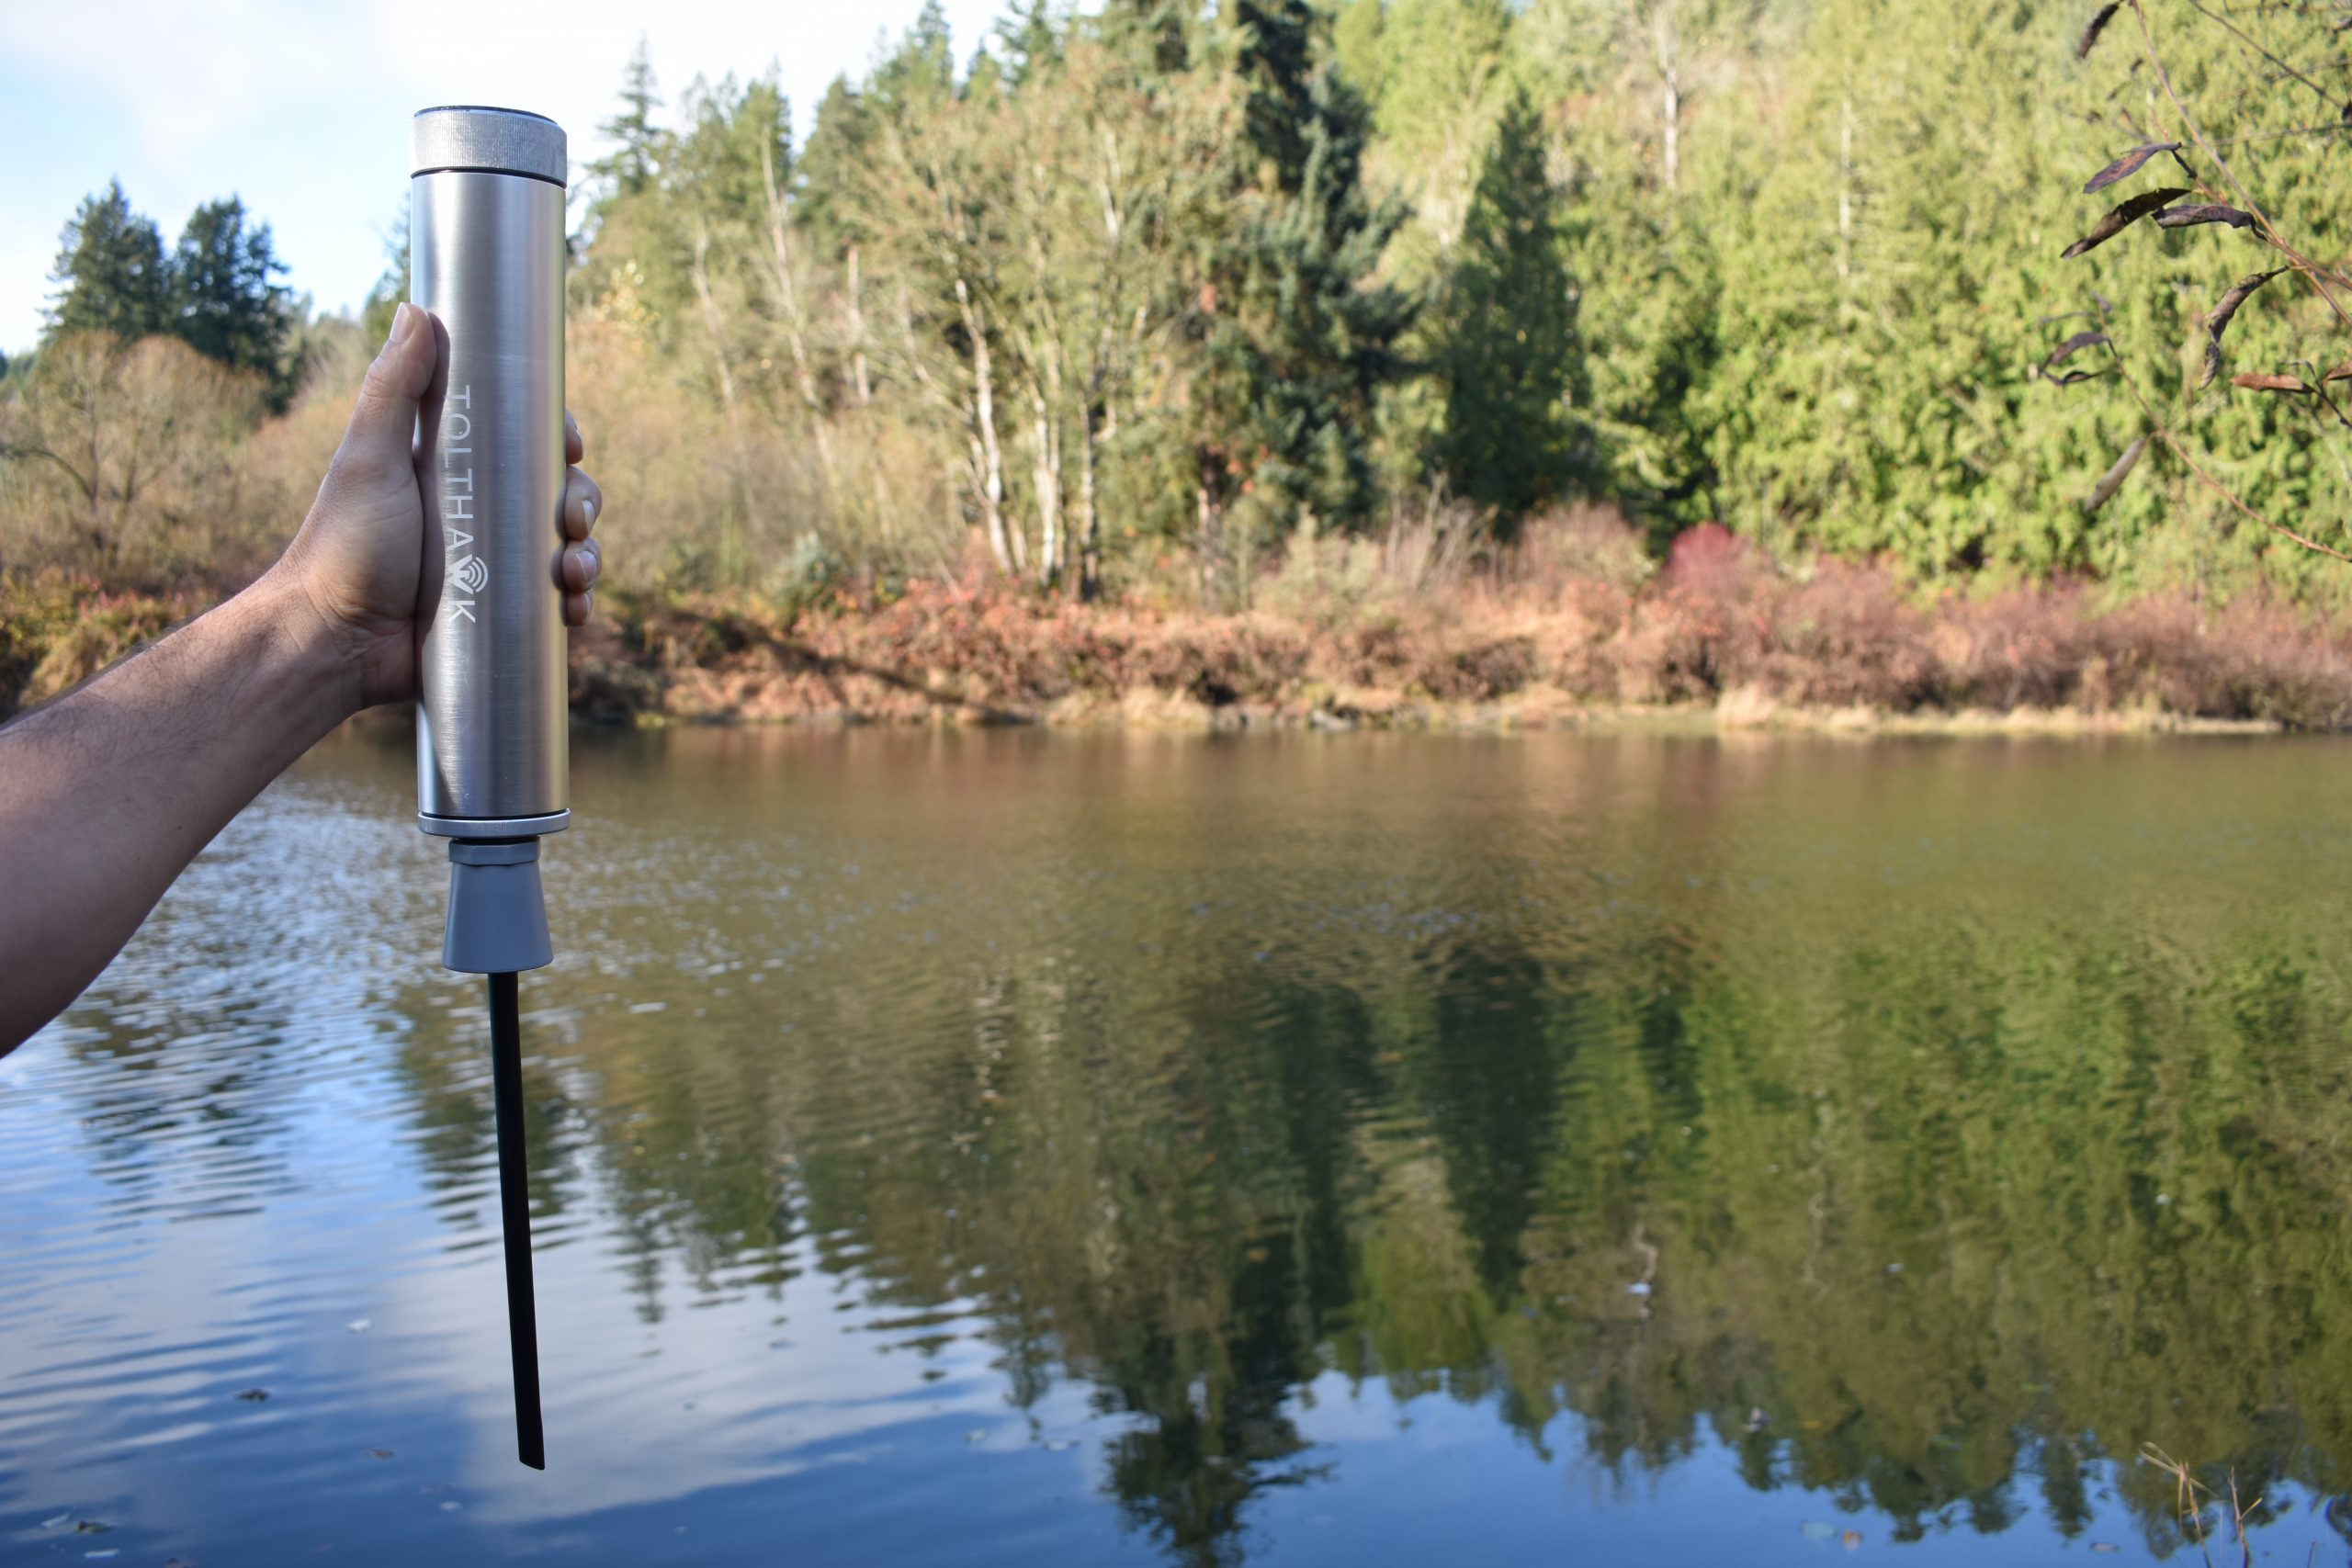 iot water level monitoring and flood tracking sensor